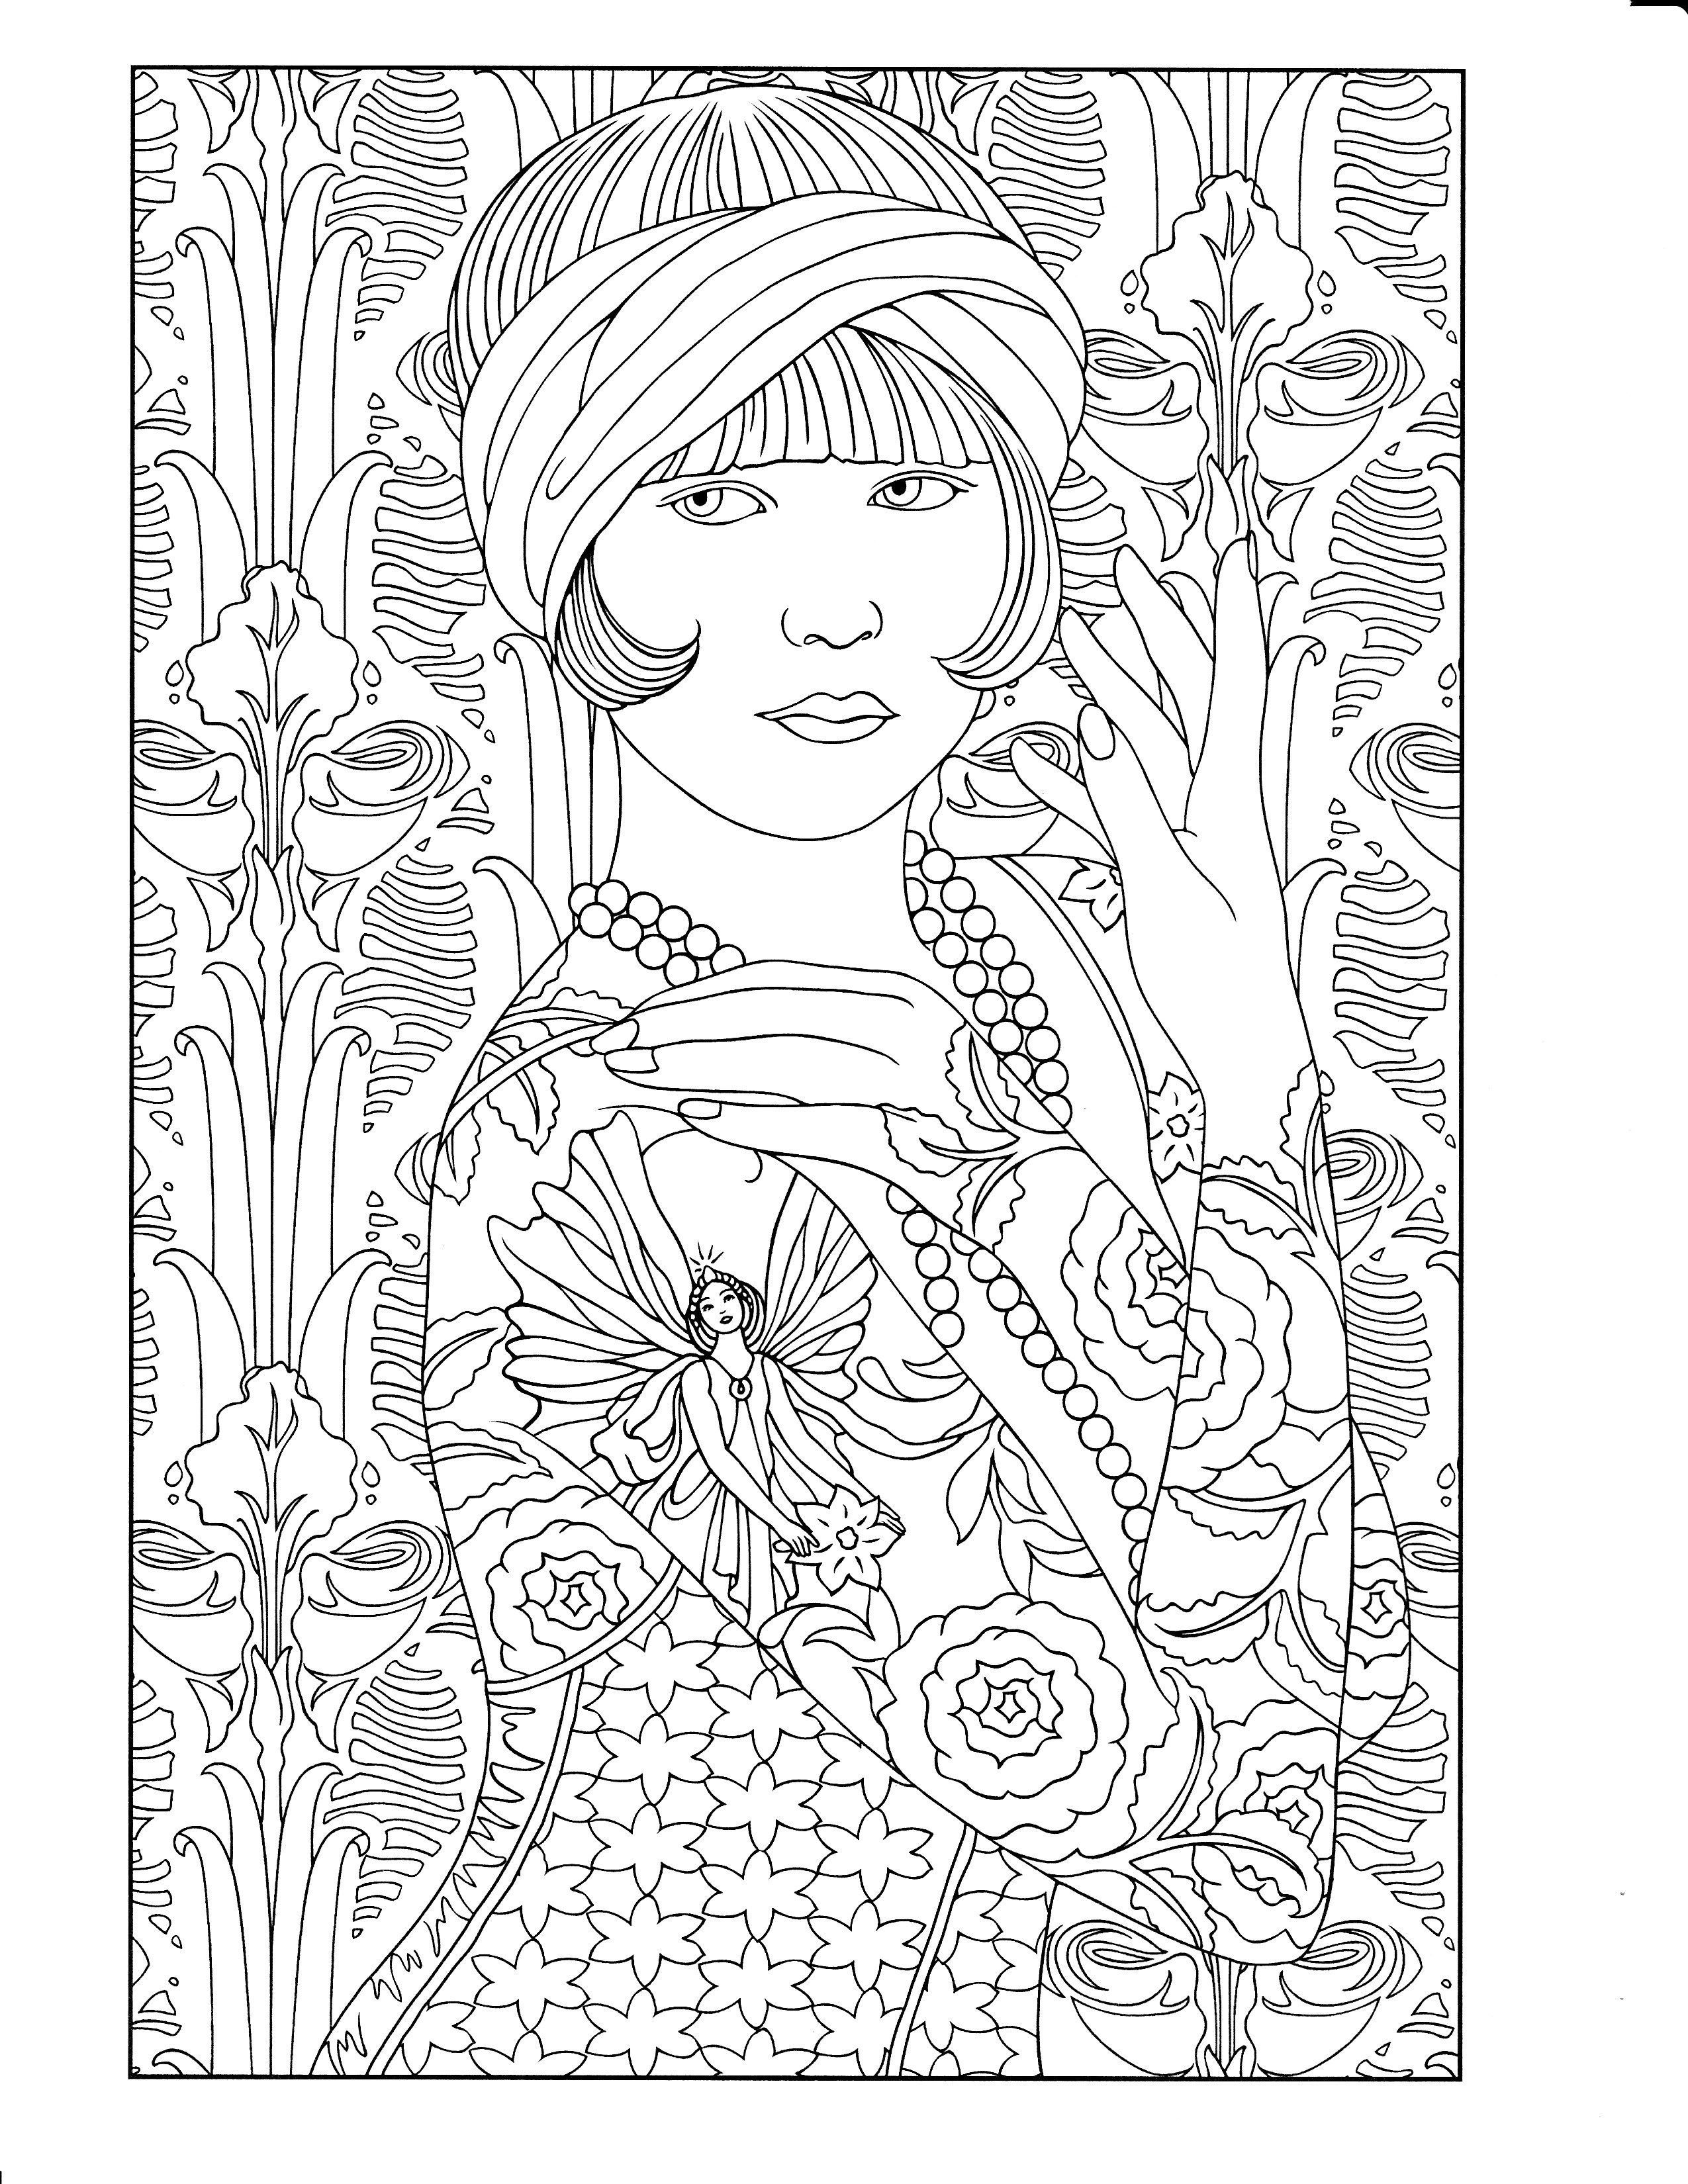 Creative Haven Body Art Tattoo Designs Coloring Book Designs Coloring Books Coloring Books Coloring Pages